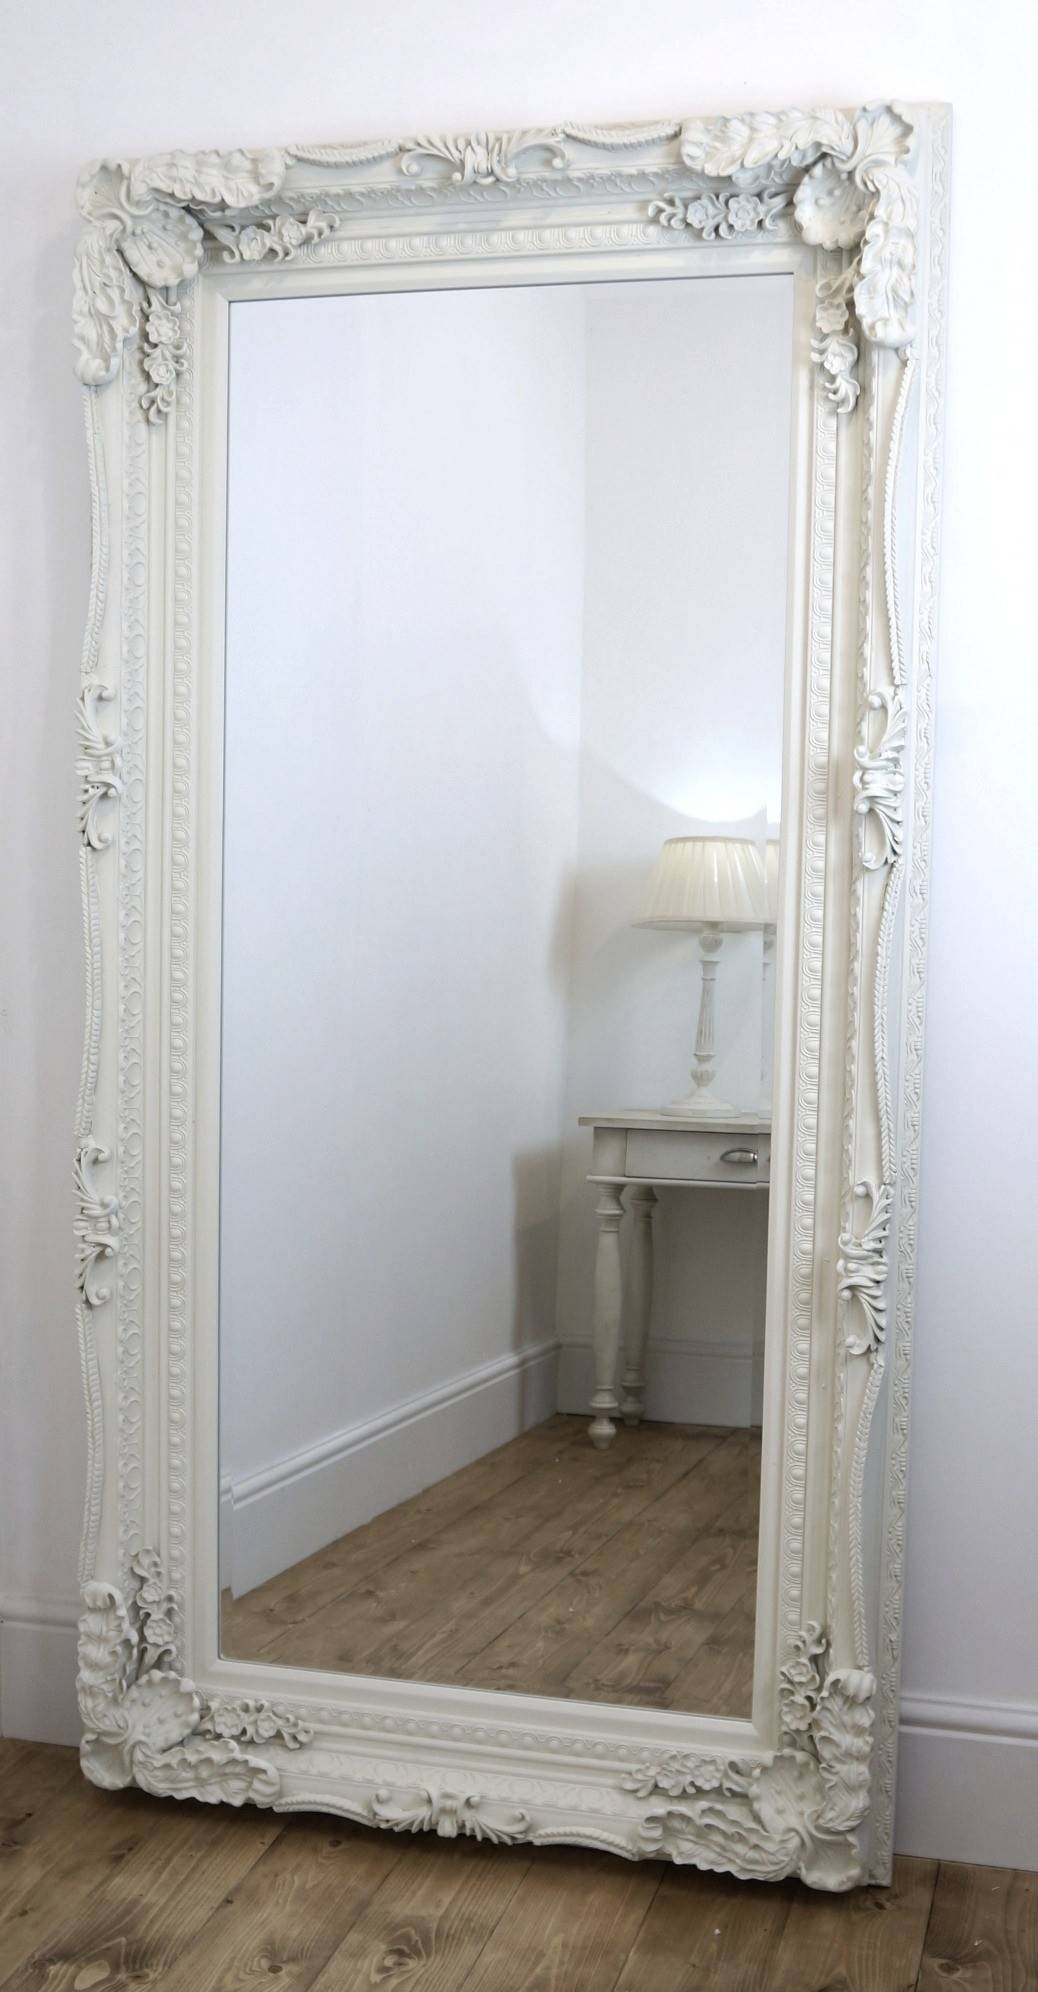 Furniture: Luxury Leaner Mirror For Home Accessories Ideas Inside Ornate Floor Mirrors (View 7 of 15)